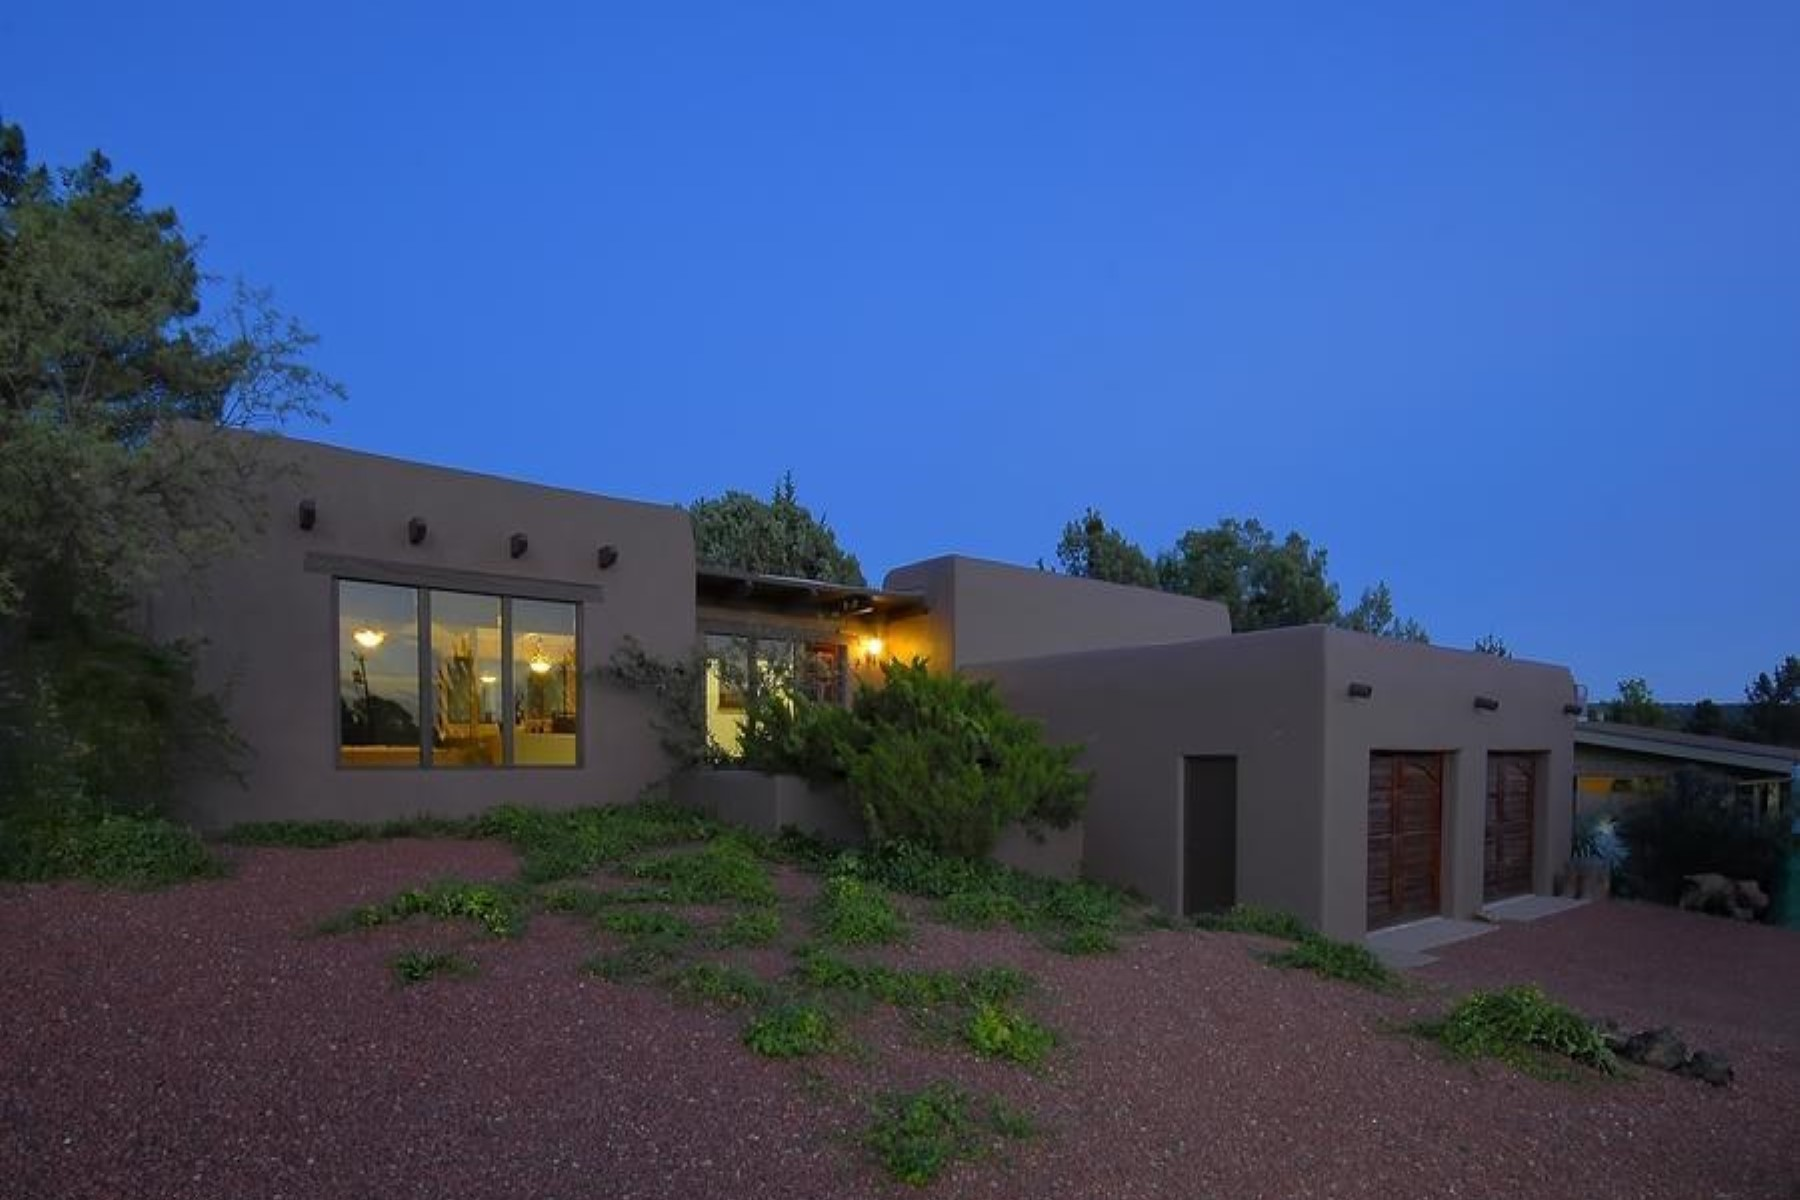 Single Family Home for Sale at Southwestern Pueblo style home with Red Rock views. 580 Mountain Shadows Drive Sedona, Arizona 86336 United States